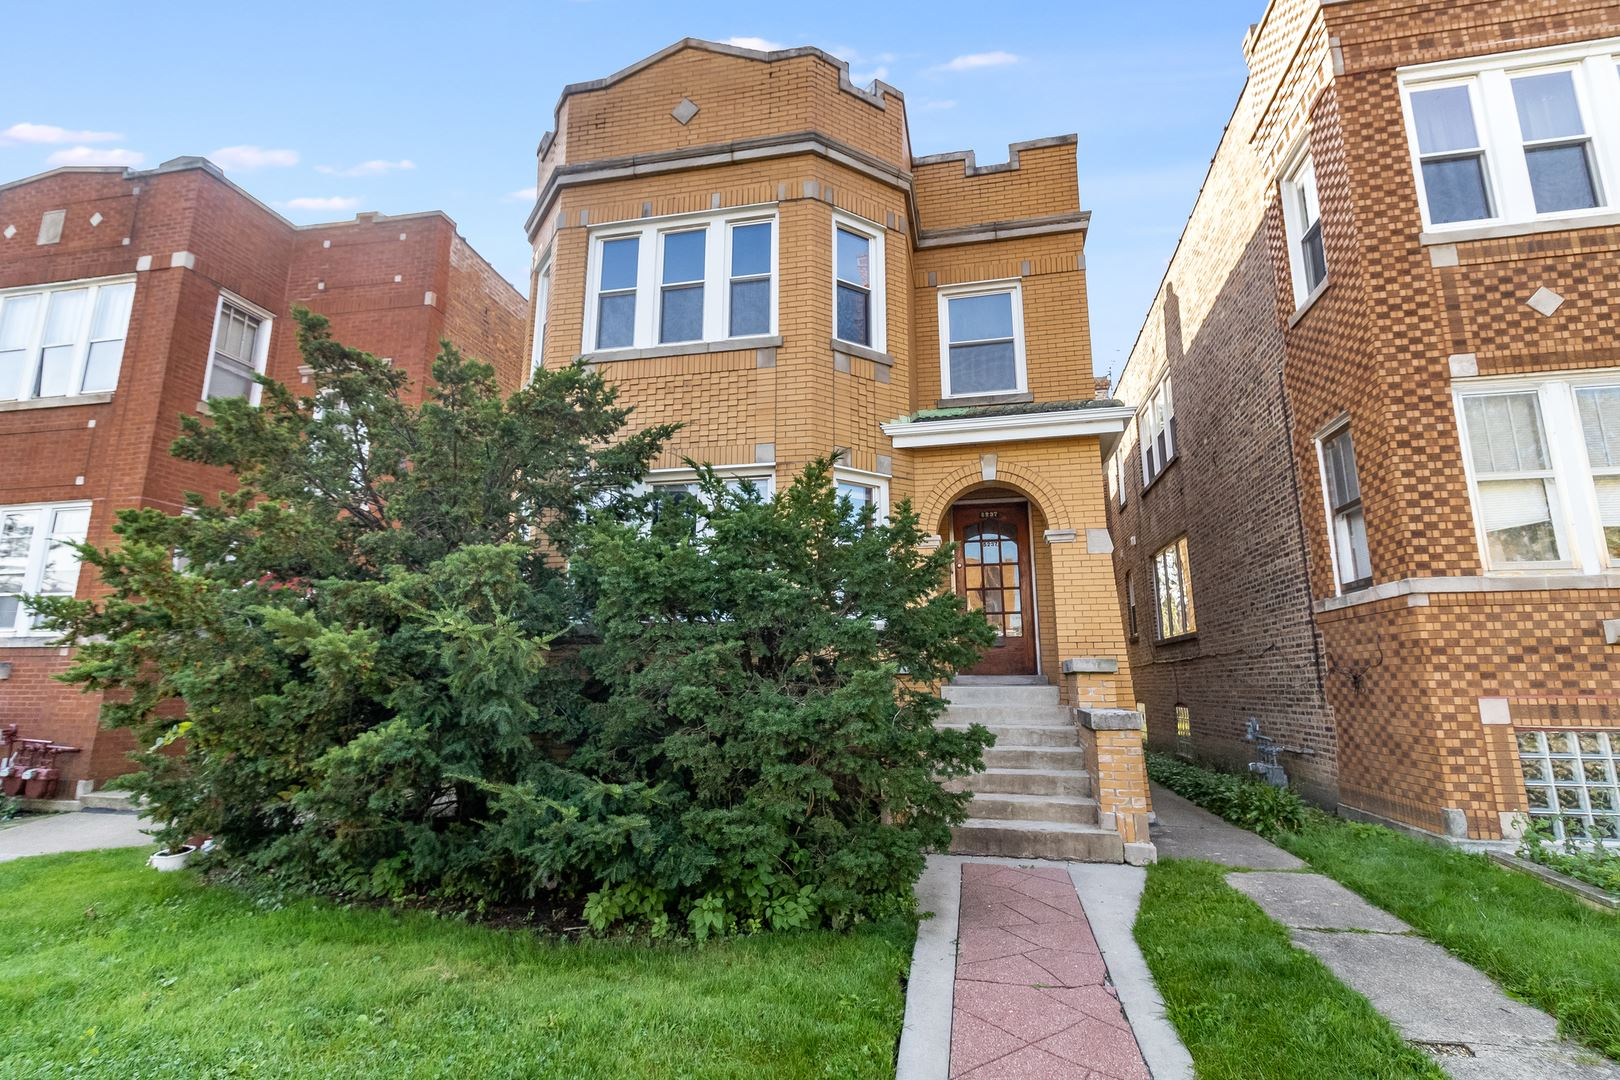 5237 W School Street, Chicago, IL 60641 - #: 10683424